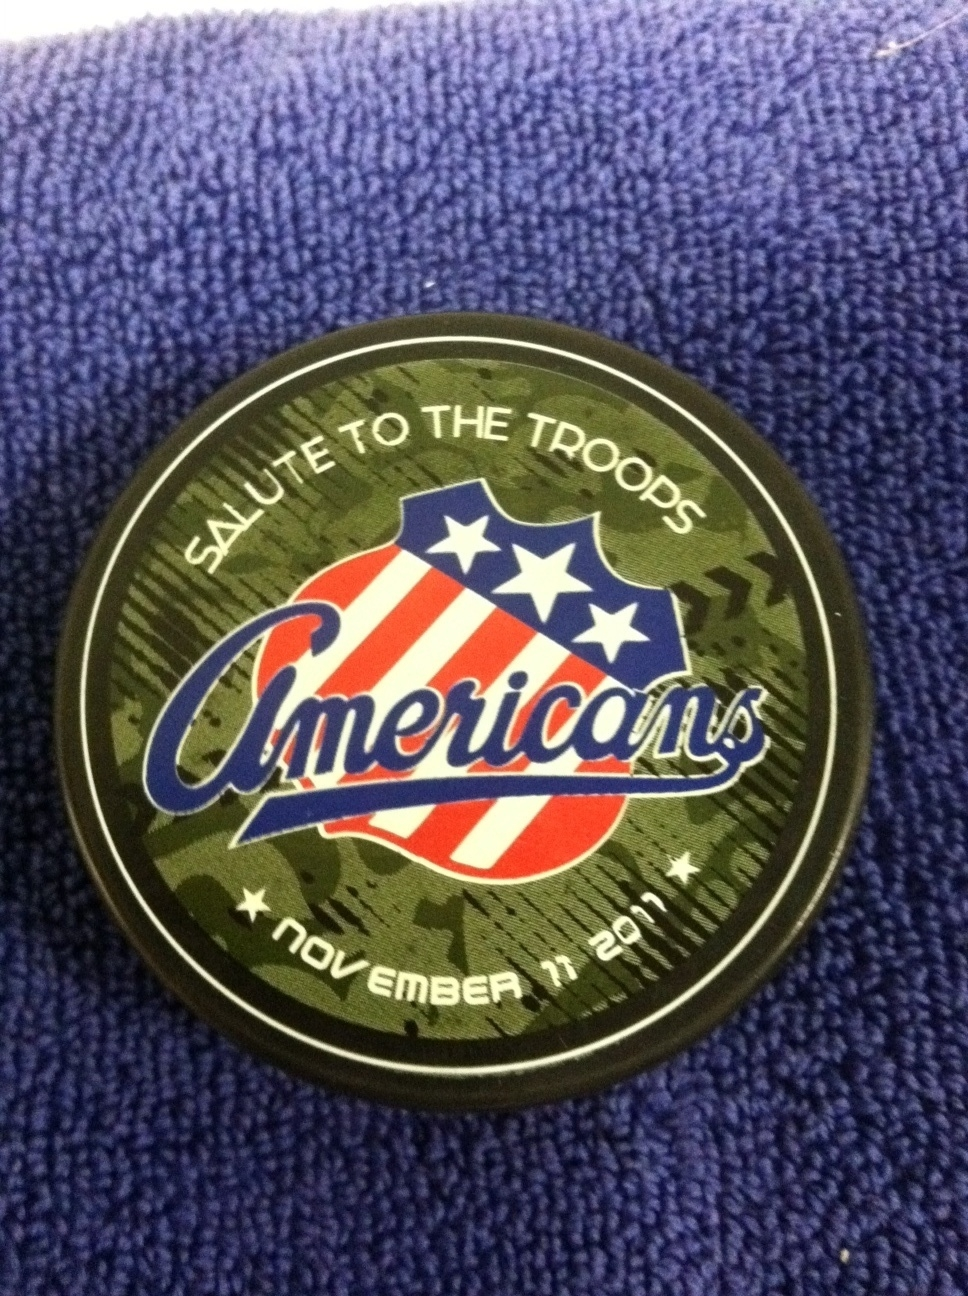 5 Reasons To Attend The Amerks vs Senators Game Tonight